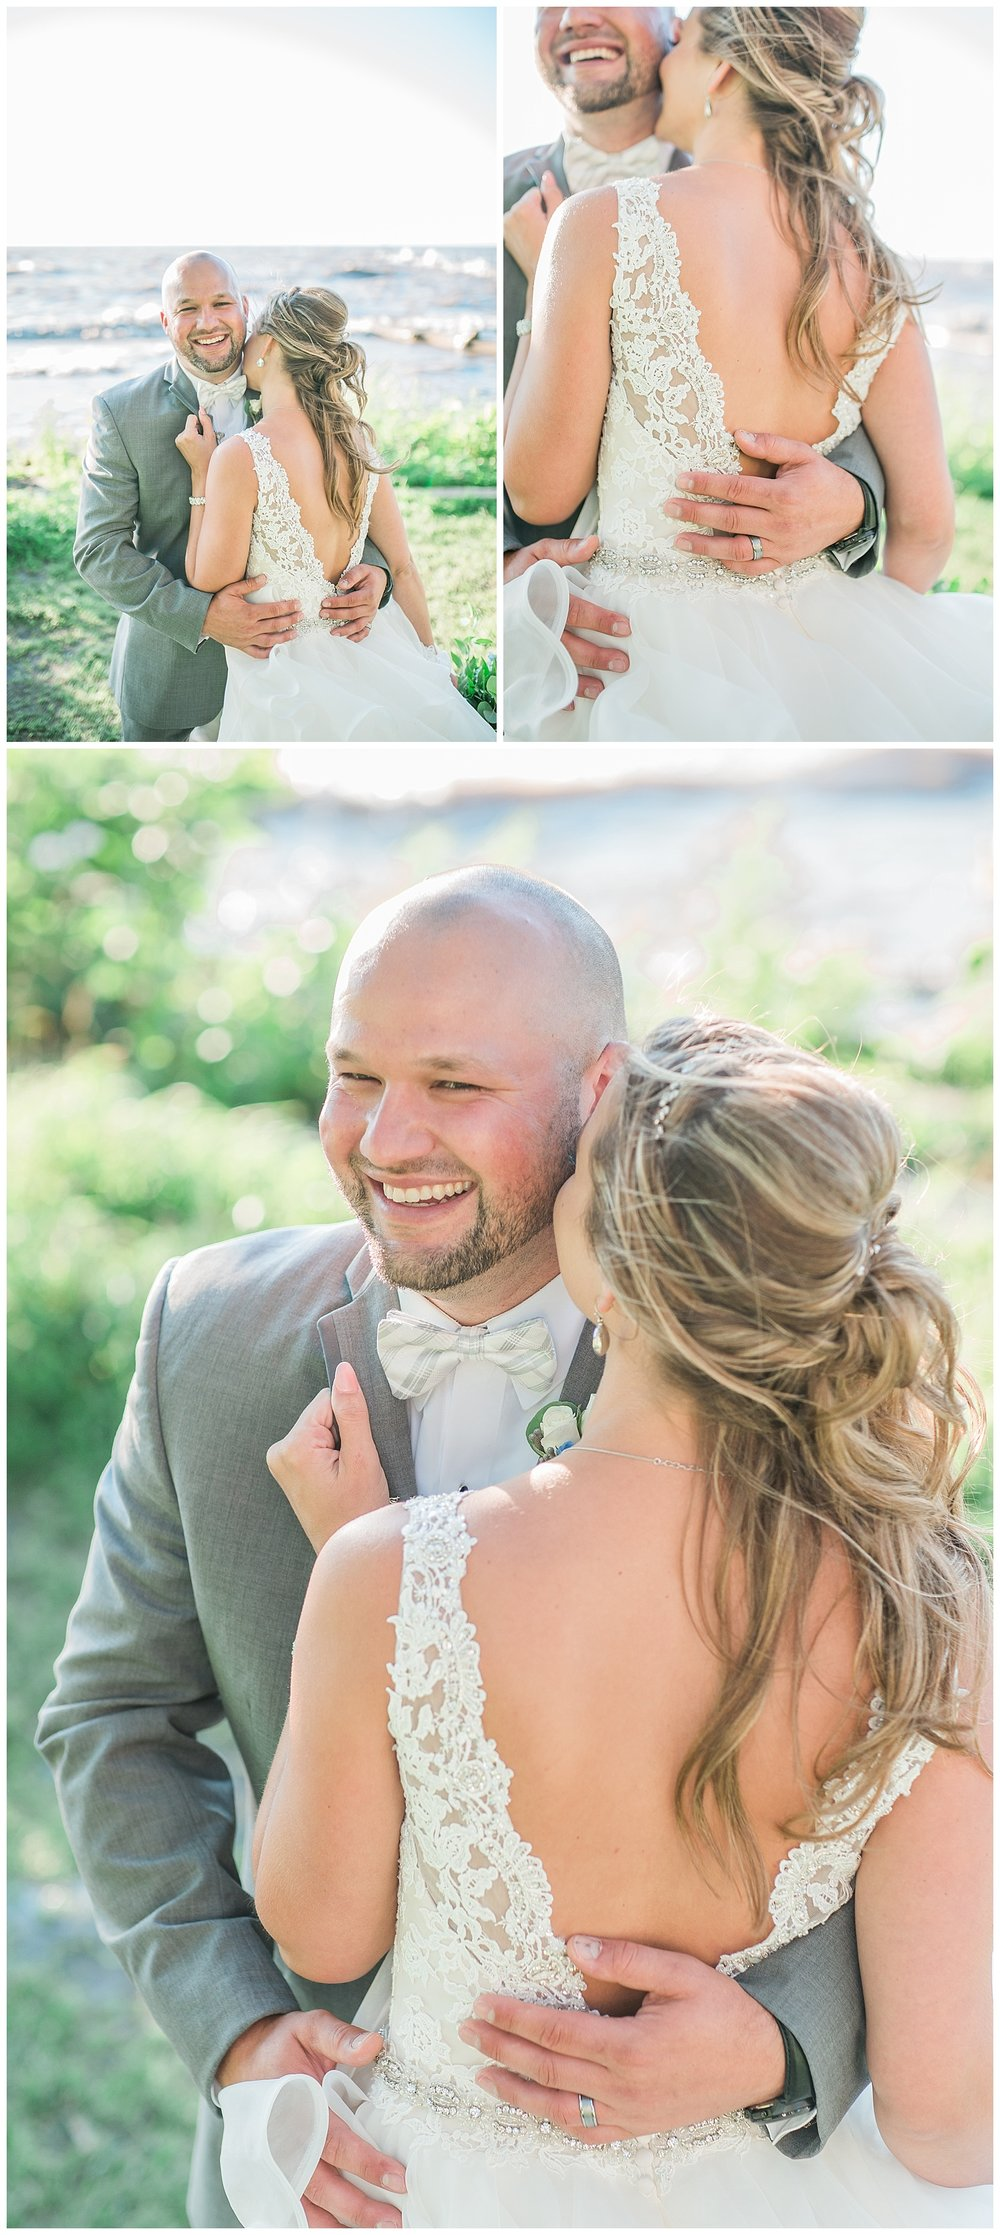 Sean and Andrea - Webster wedding - lass and beau-1035_Buffalo wedding photography.jpg